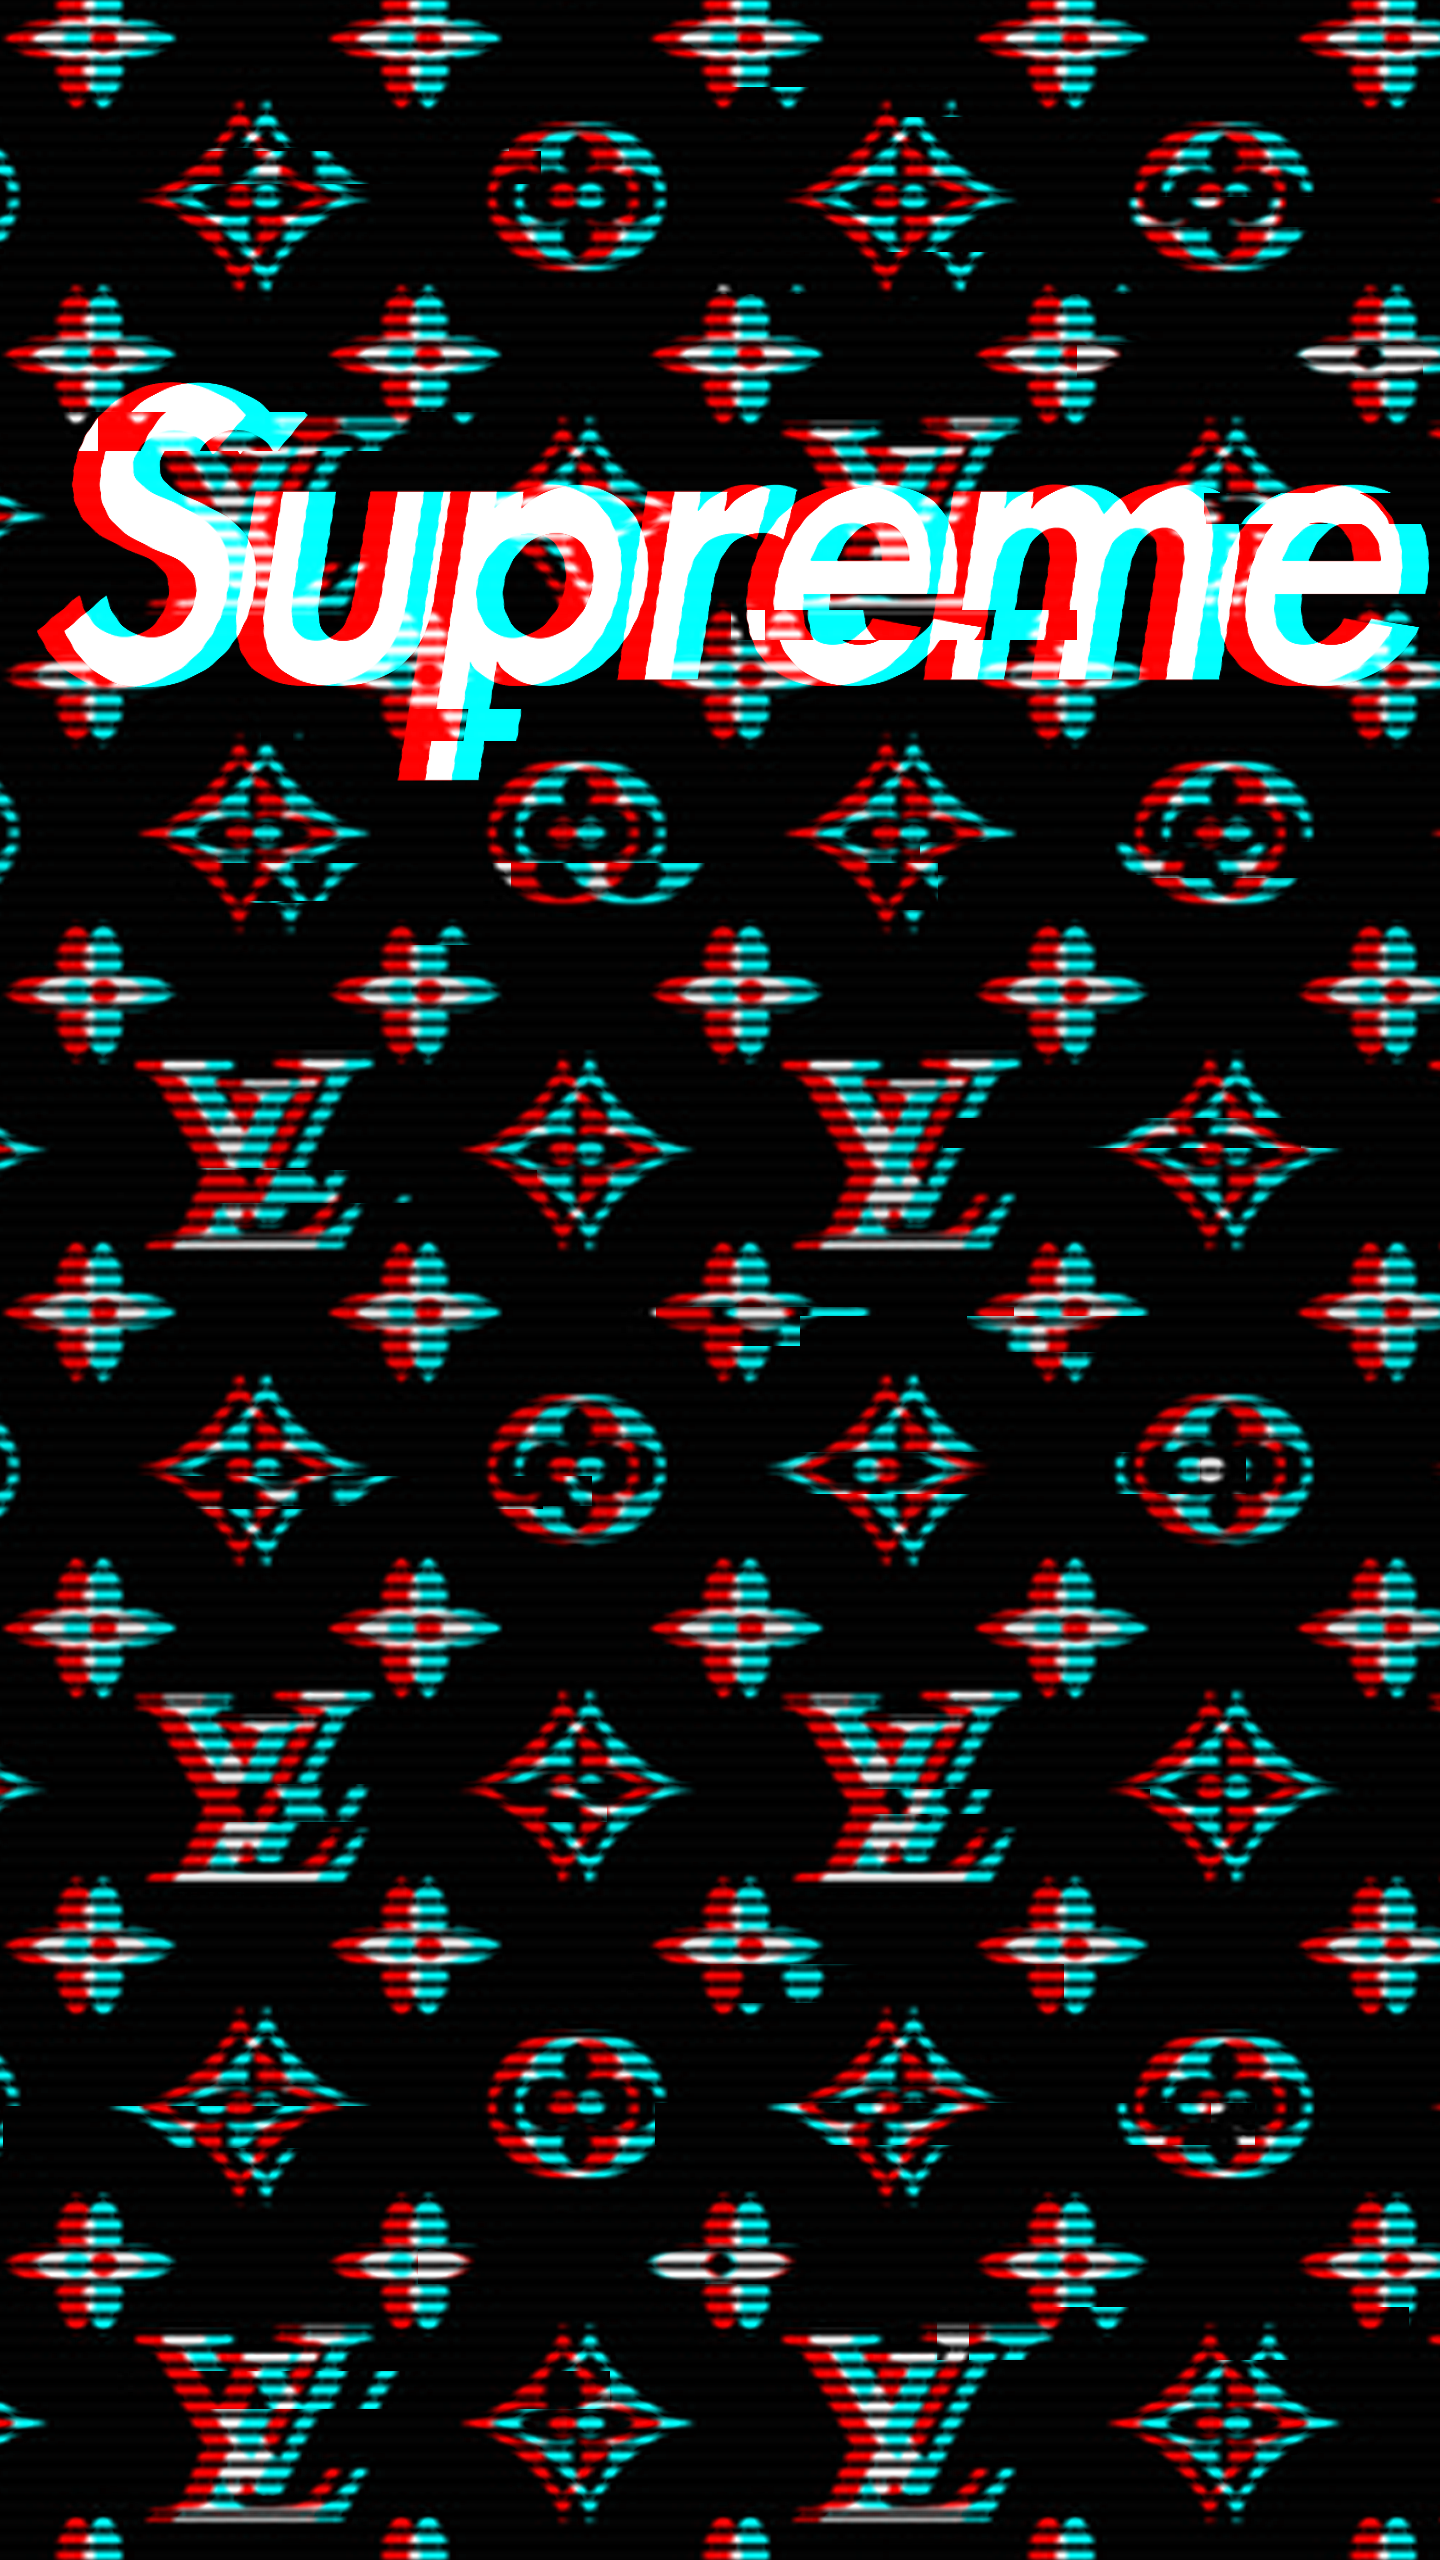 Pin by Vlad on fff | Pinterest | Supreme wallpaper, Hypebeast wallpaper and Mobile wallpaper